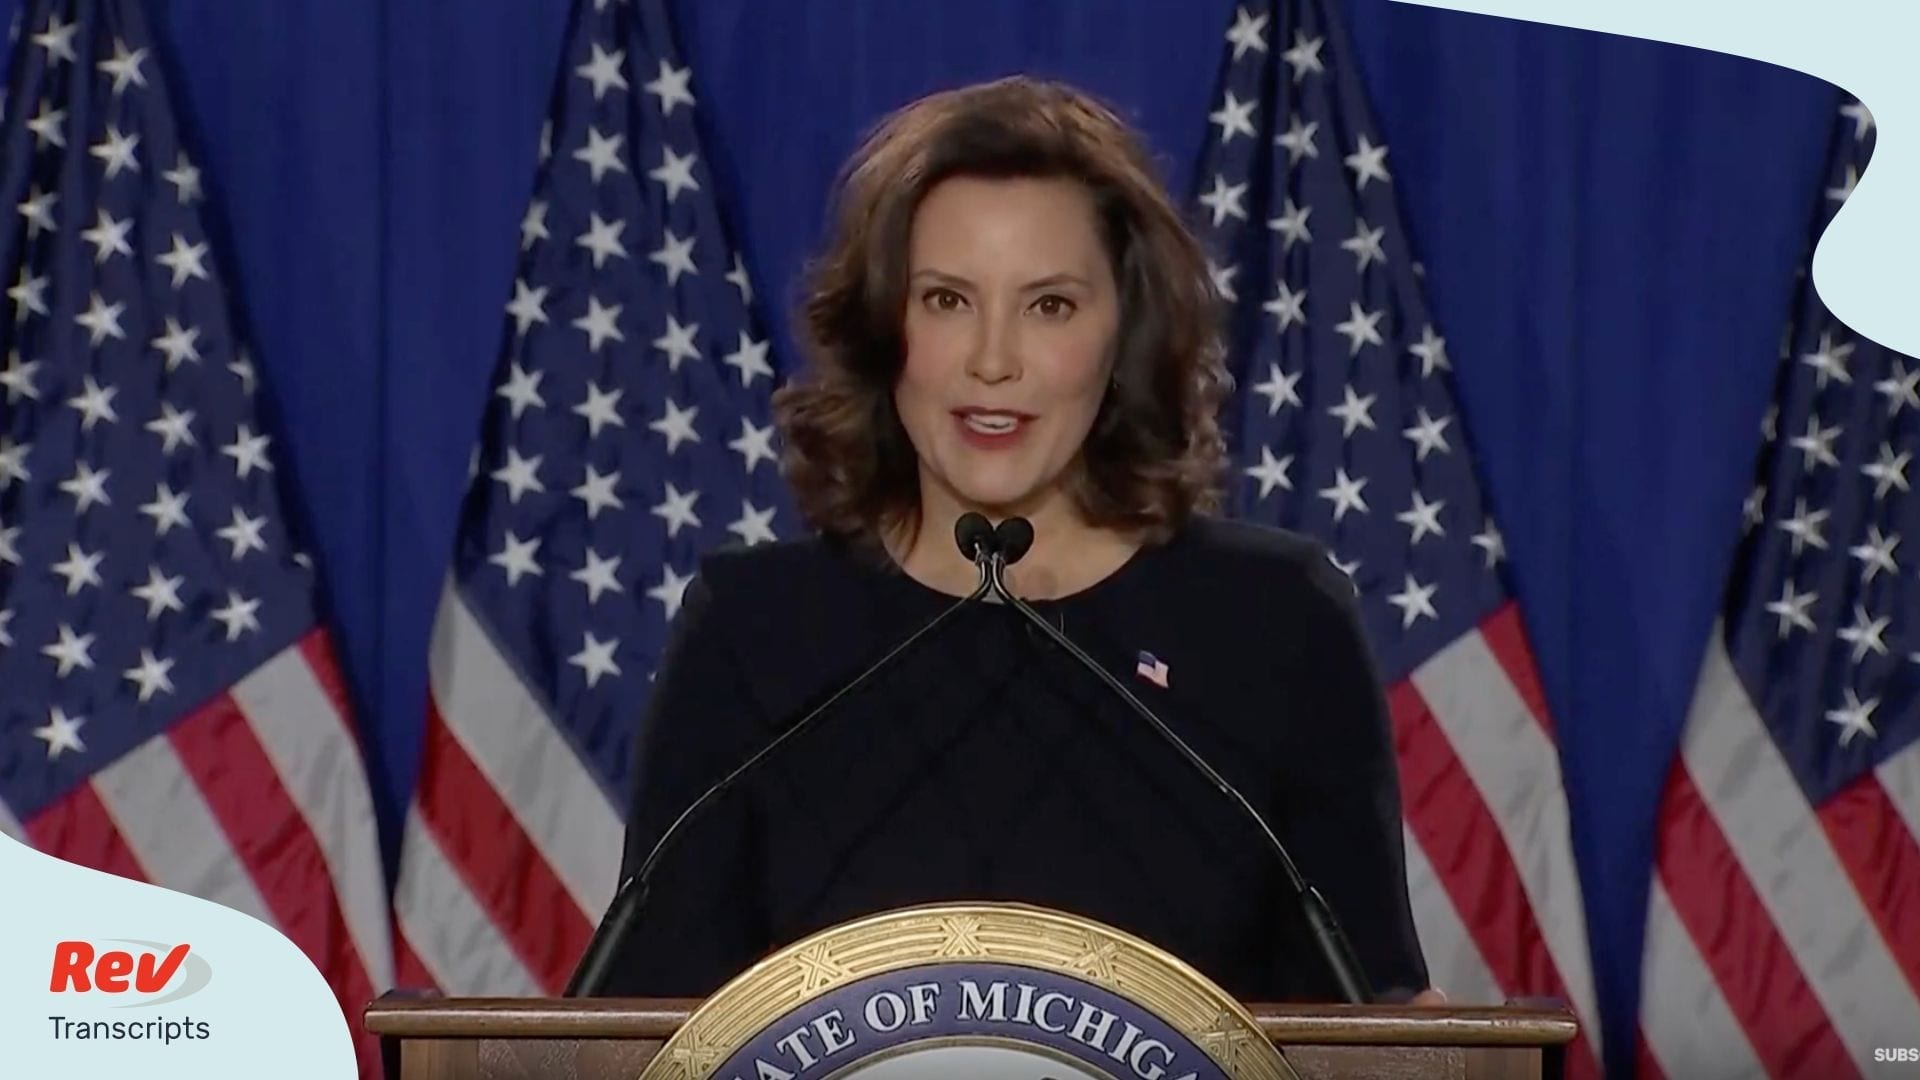 Democratic Response to State of the Union Gretchen Whitmer